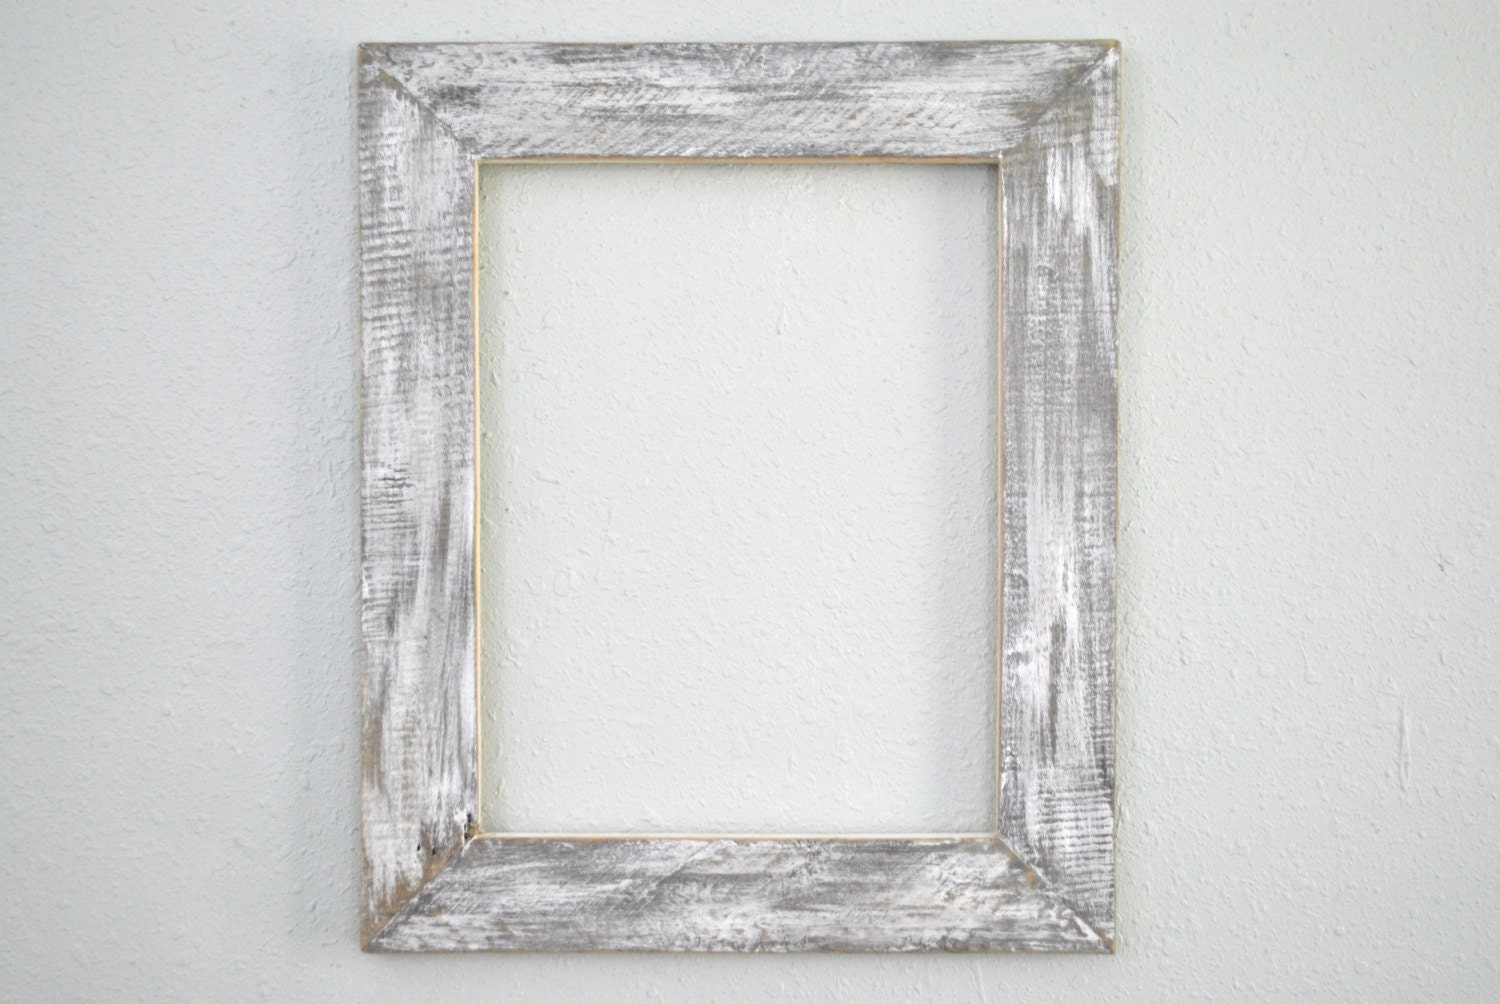 Luxury Rustic Wooden Frames Image Collection - Picture Frame Ideas ...